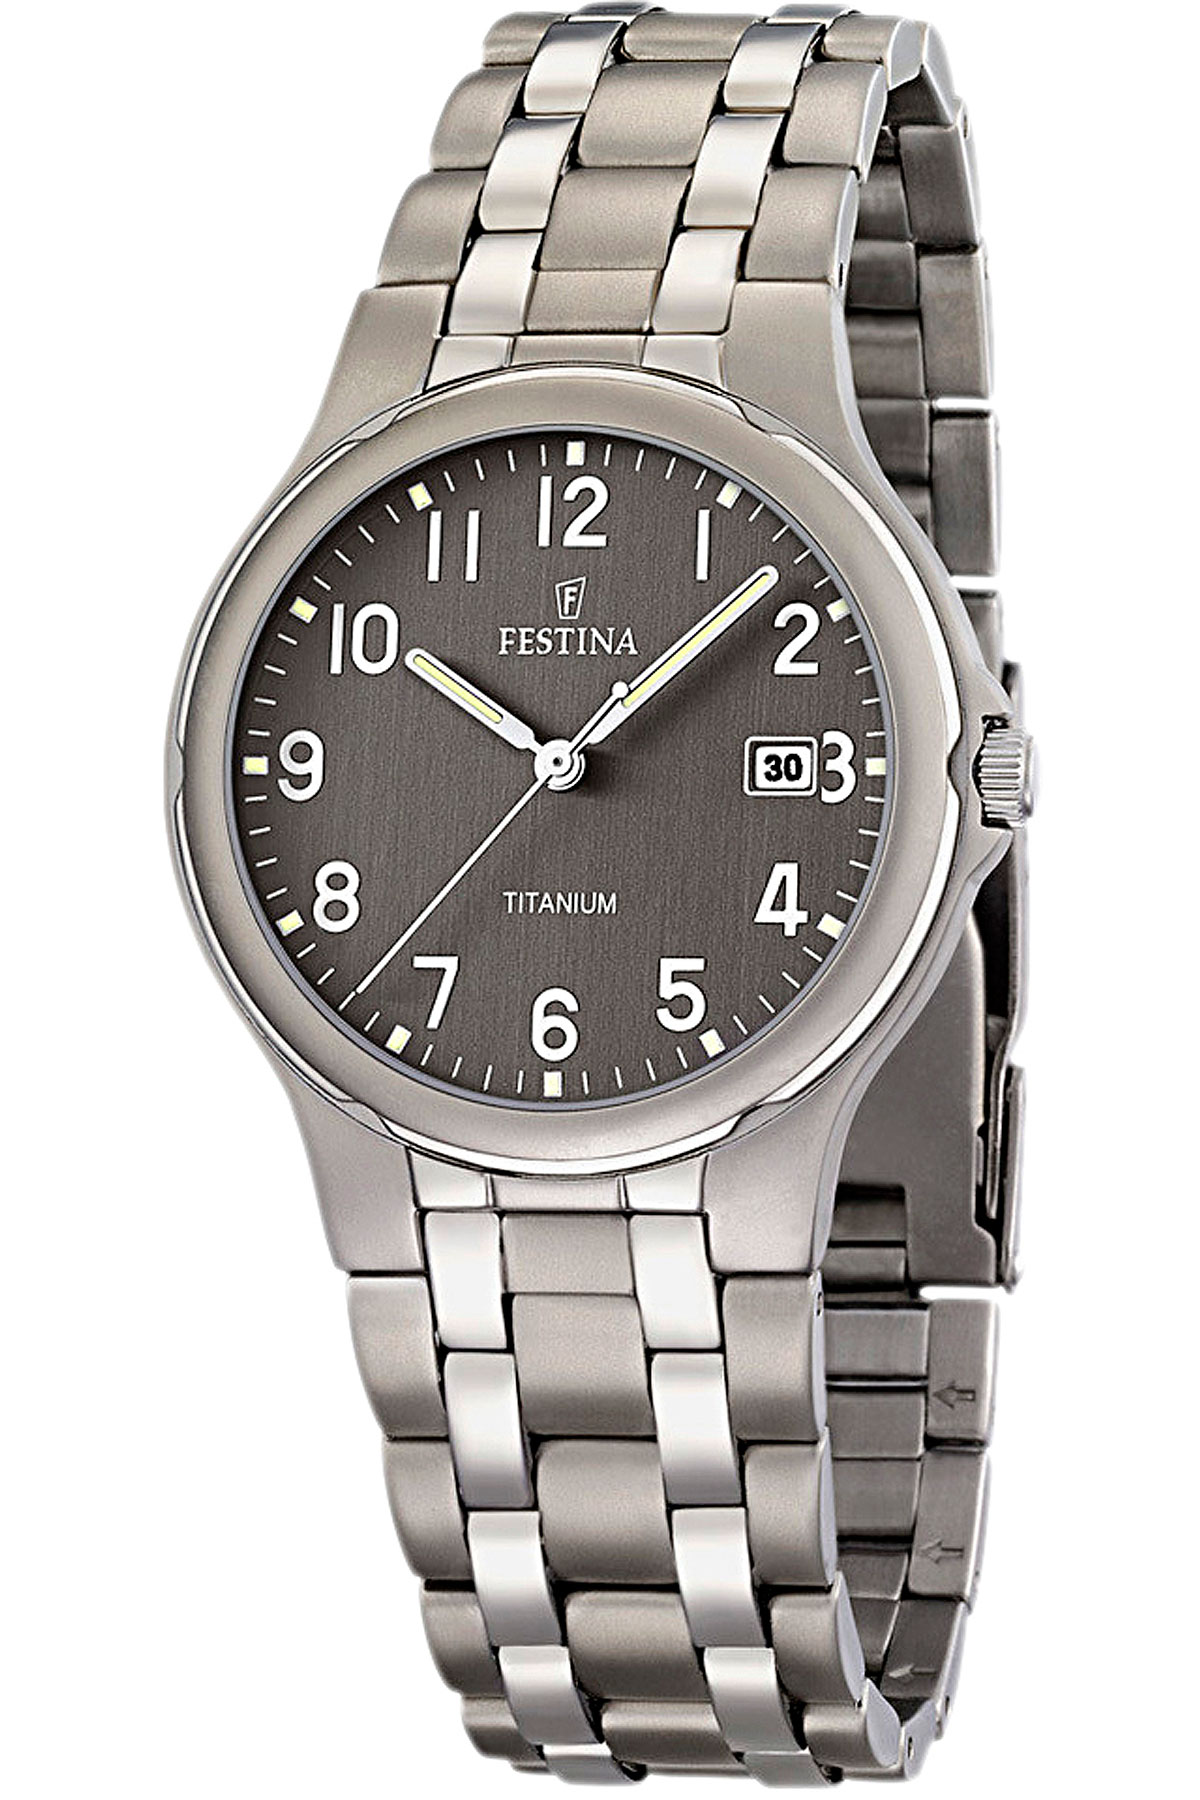 Image of Festina Watch for Men, Titanium, Stainless Steel, 2017